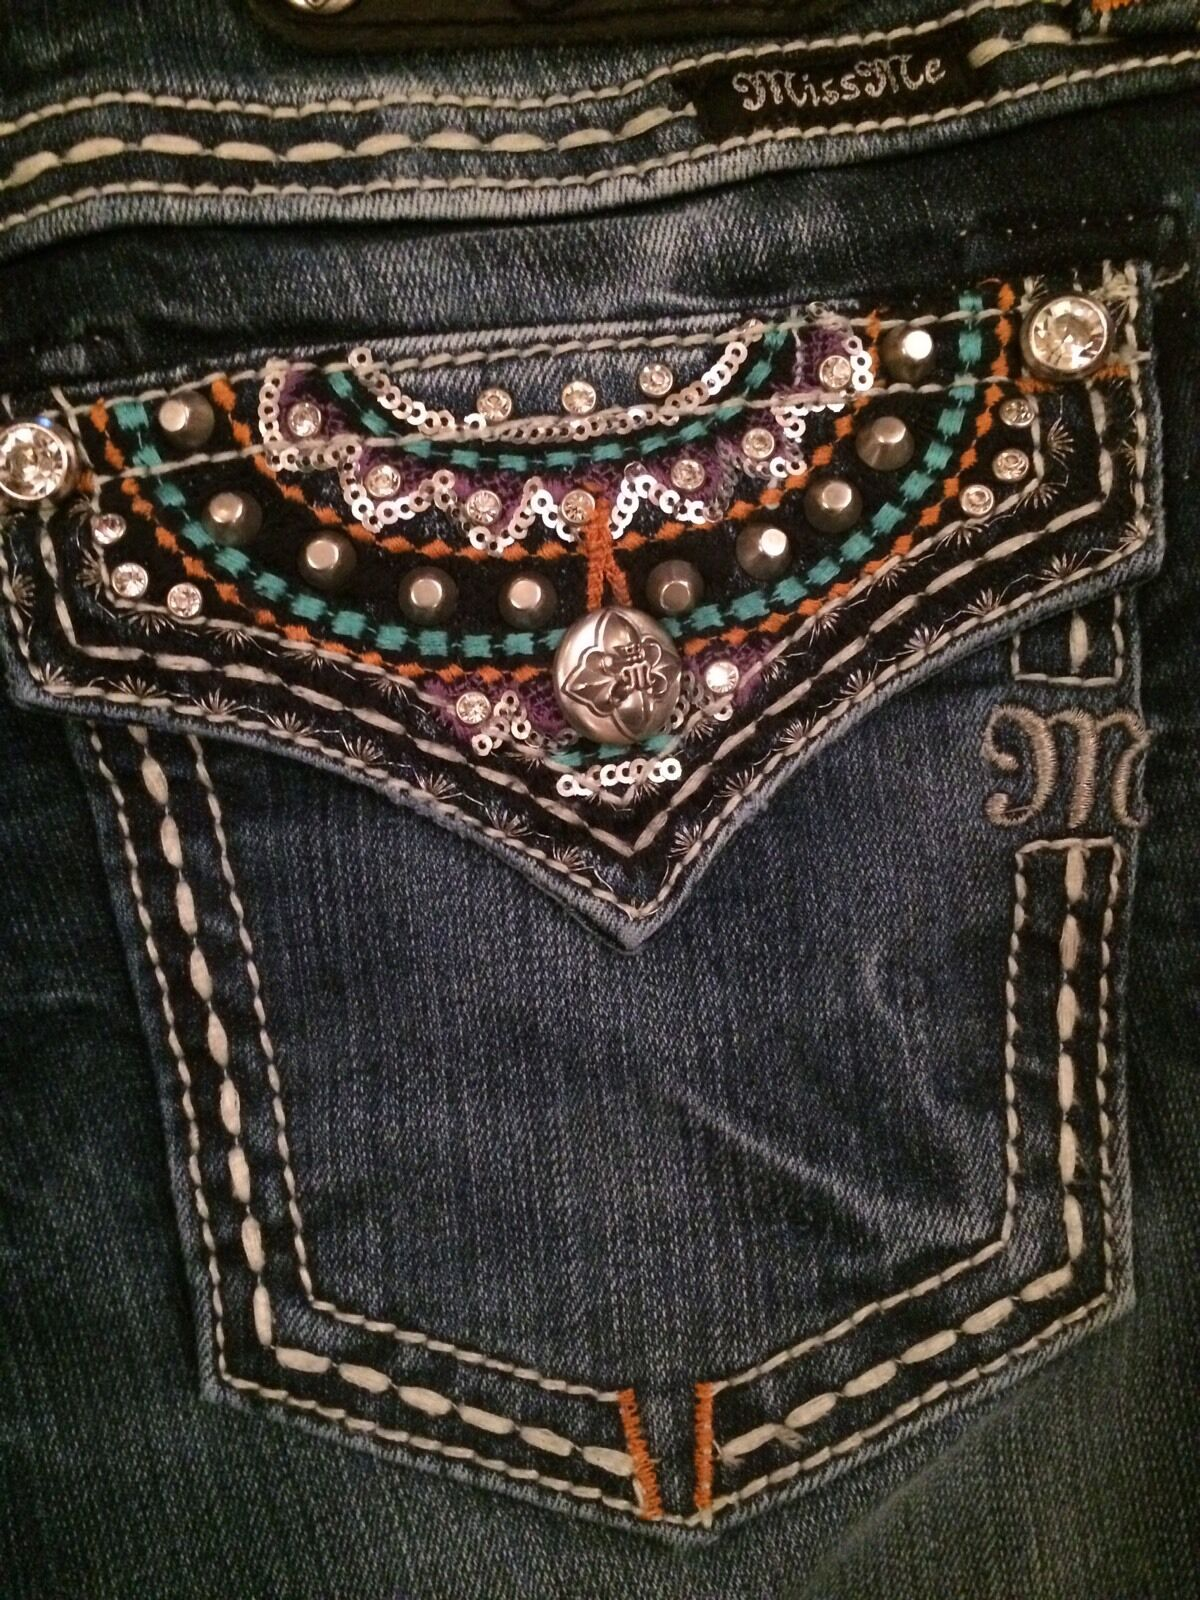 MISS ME Jeans 29 Boot Cut bluee Sz 29 x 29 Aztec Sequins Embroidery Embellished